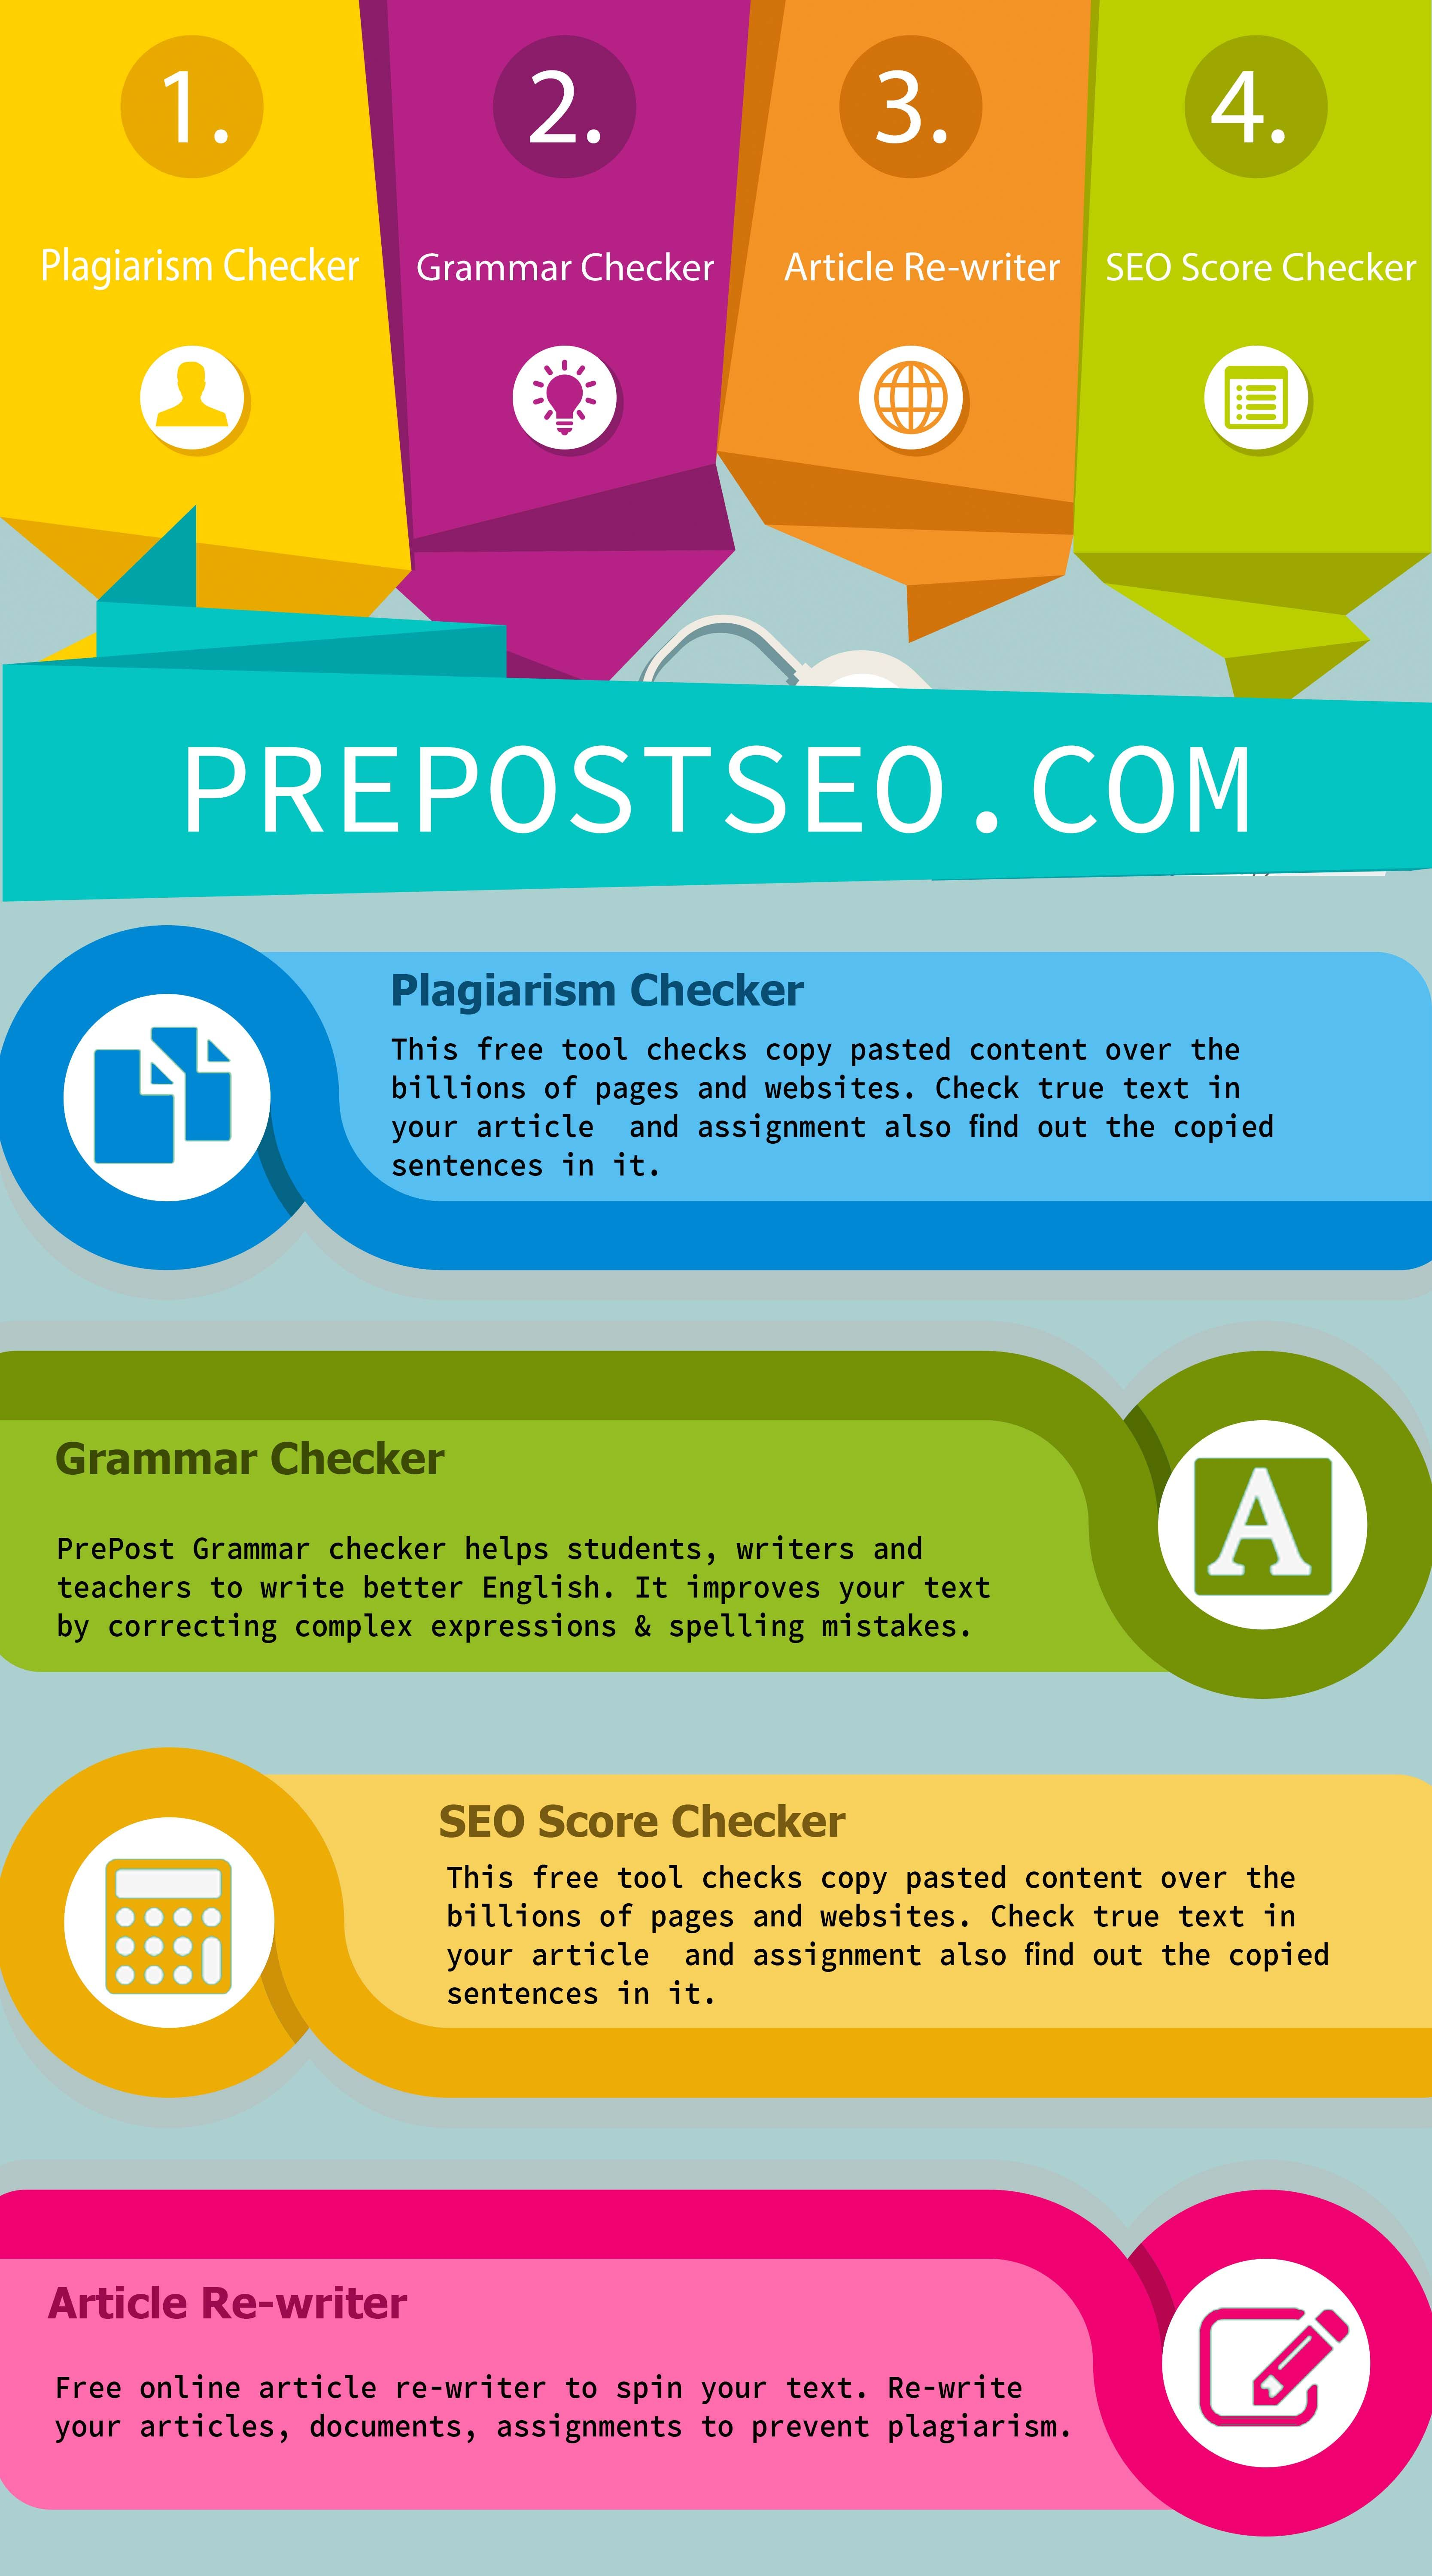 prepostseo is a seo software which contains many tools